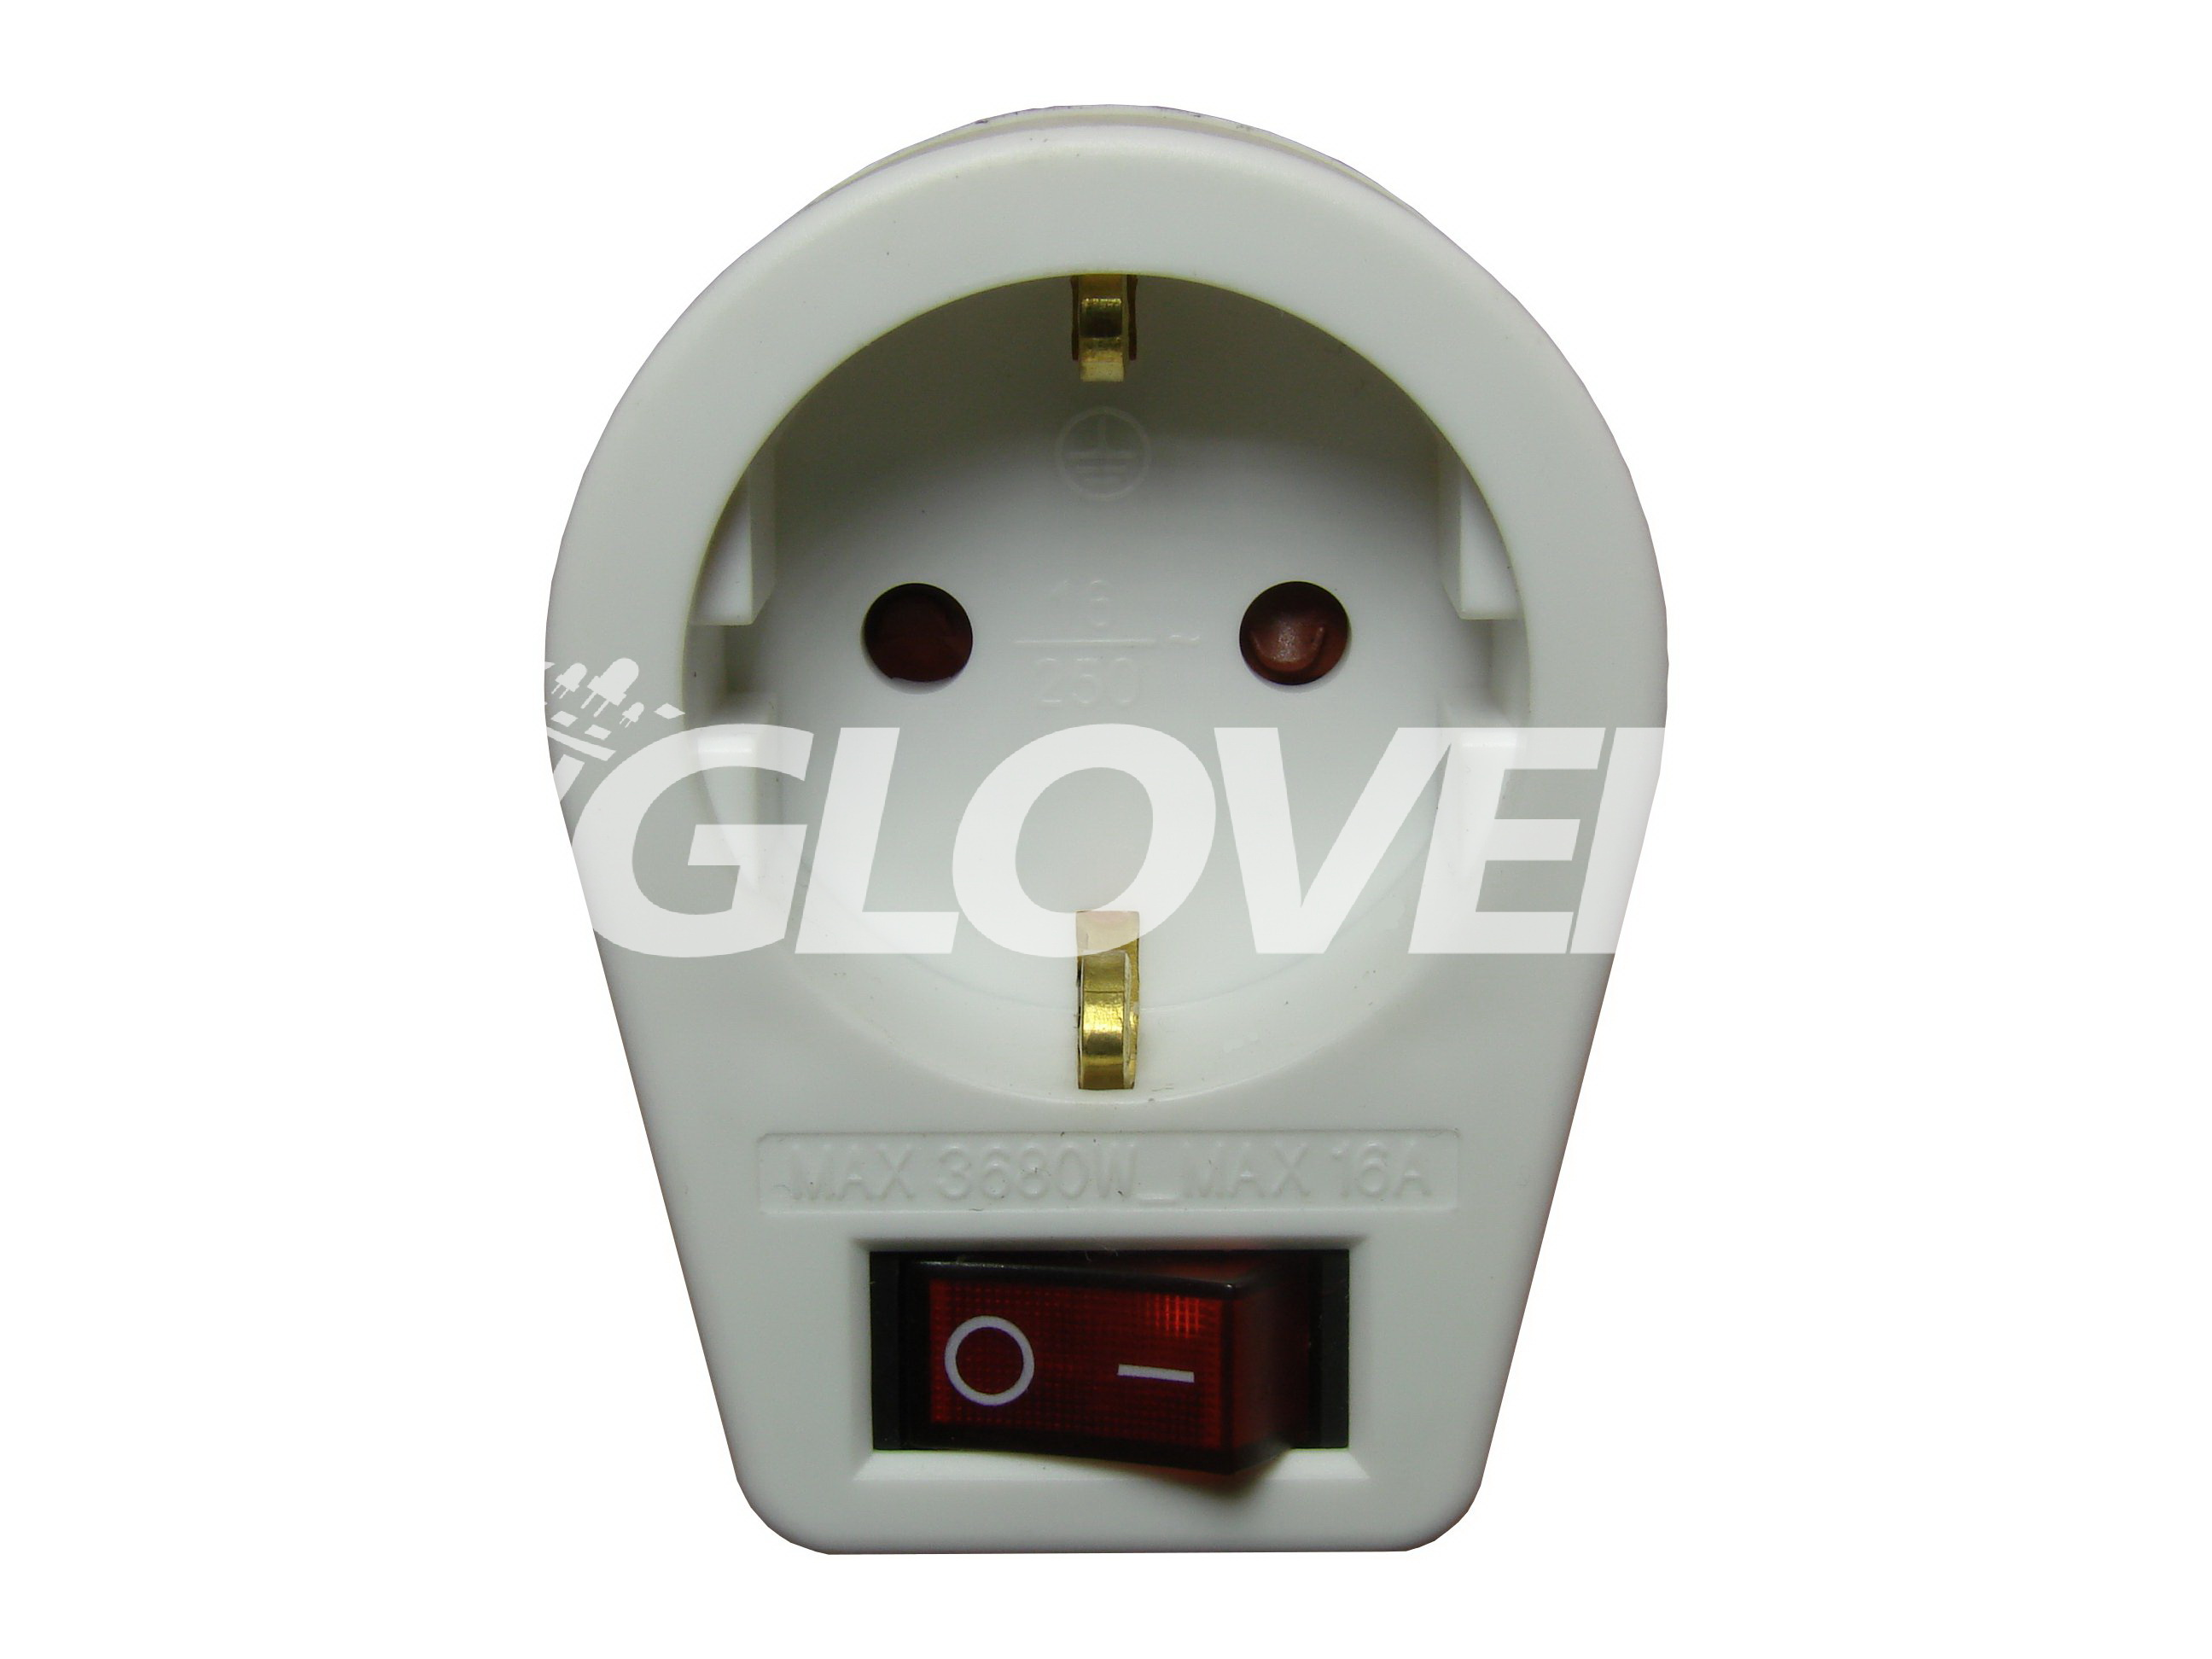 Other sockets, child safety locks, sockets, plugs